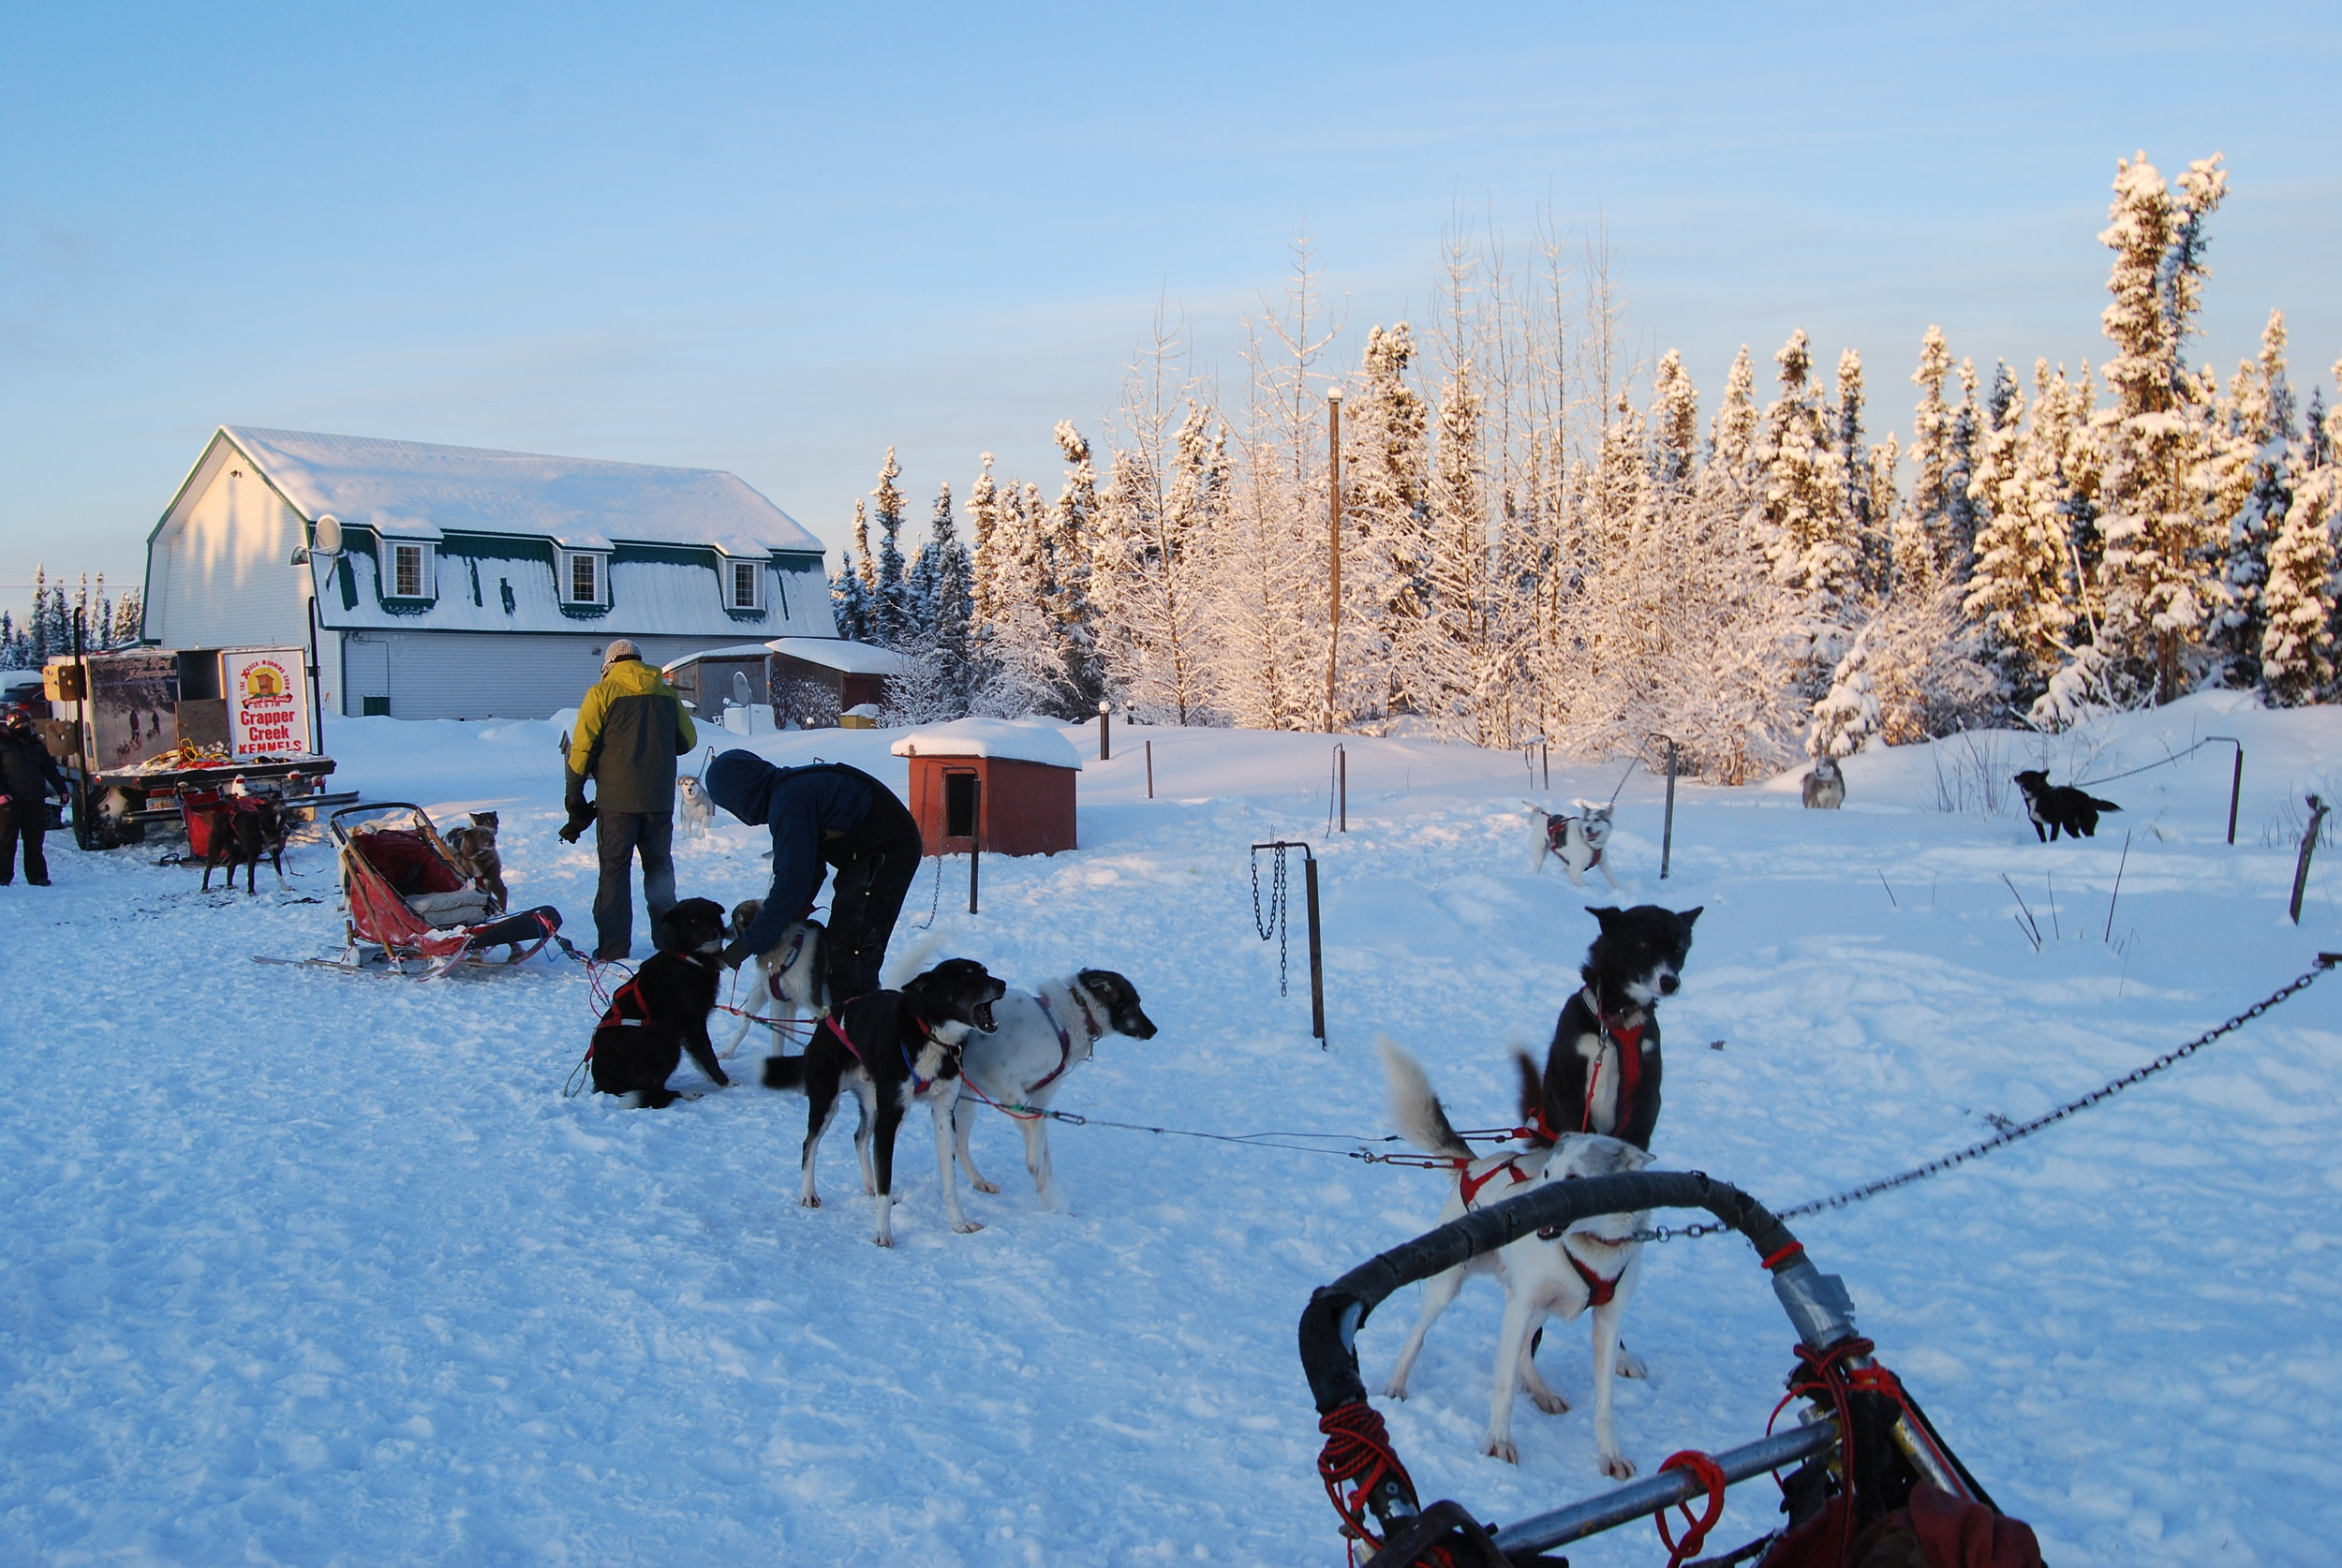 Here we are playing with the dogs as they are getting hooked up to their sleds. The Aurora Nights Inn is in the background.